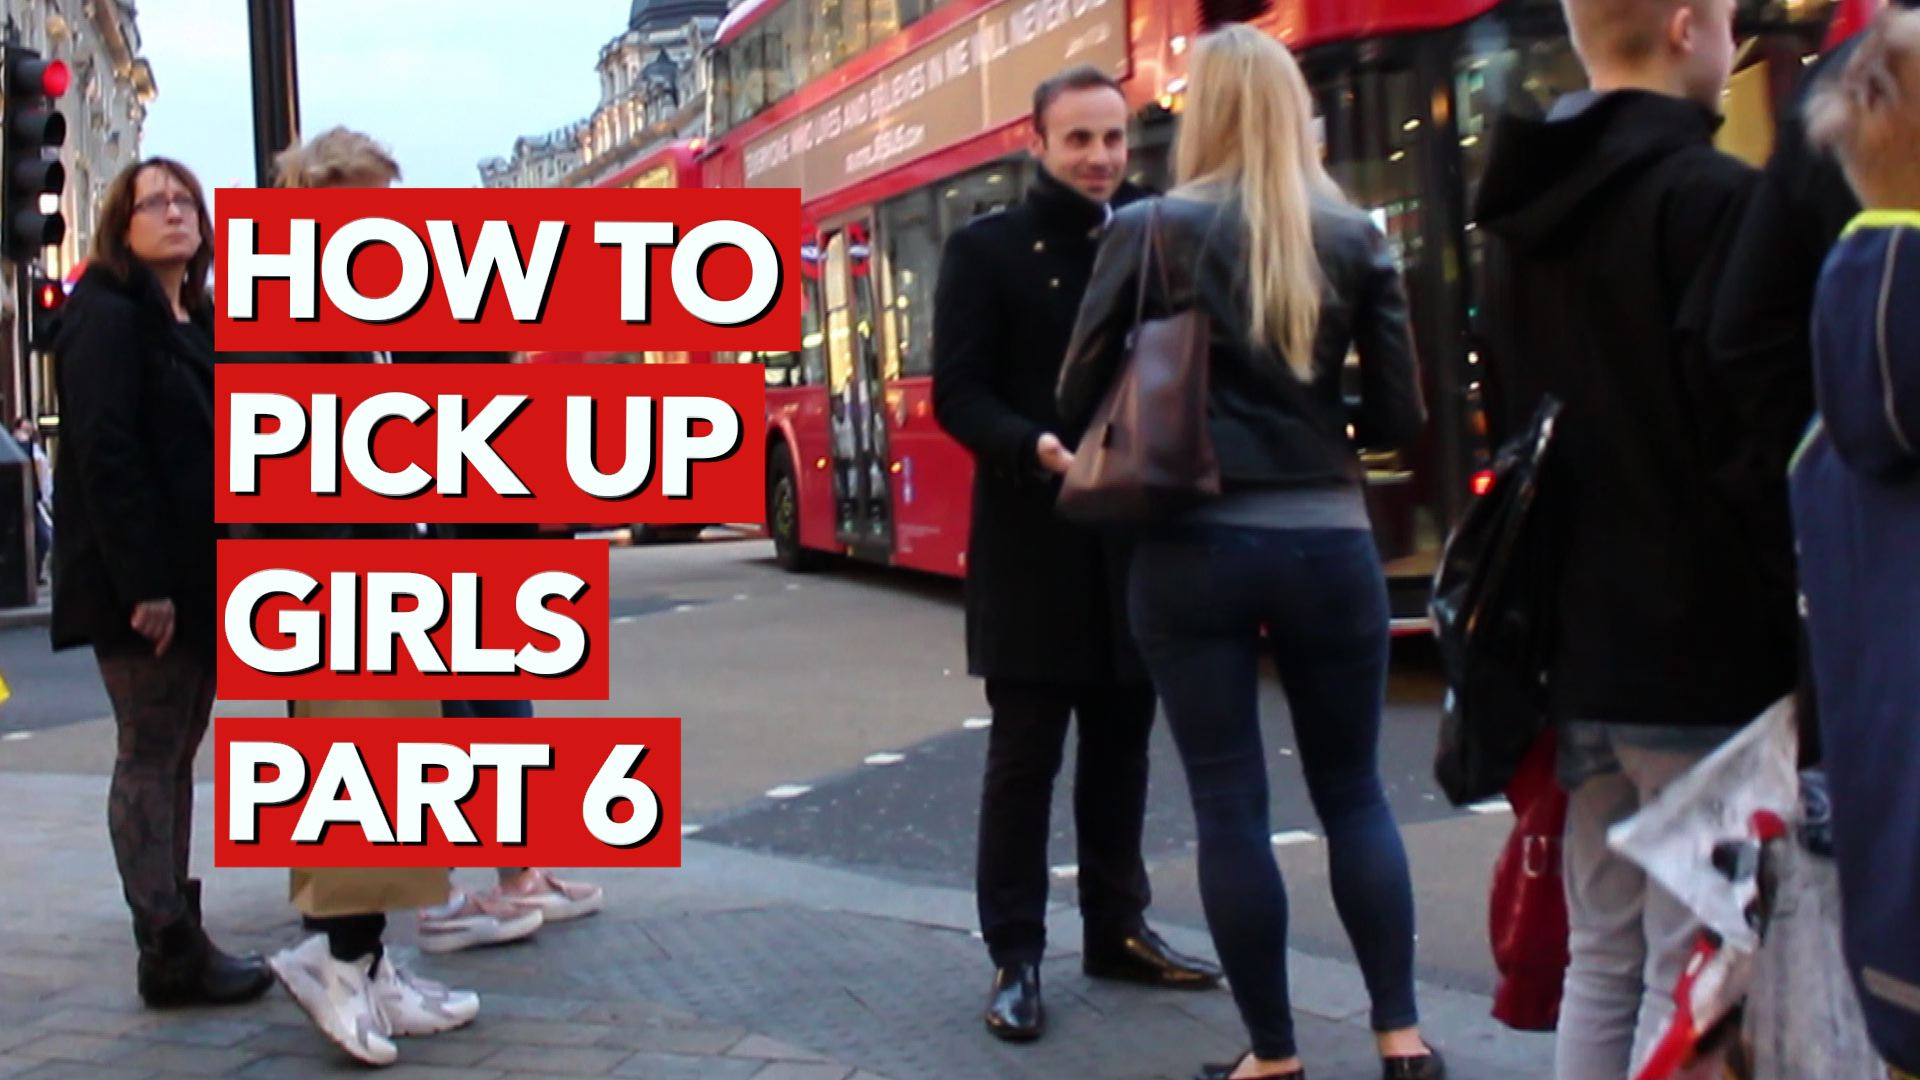 How to pick up girls